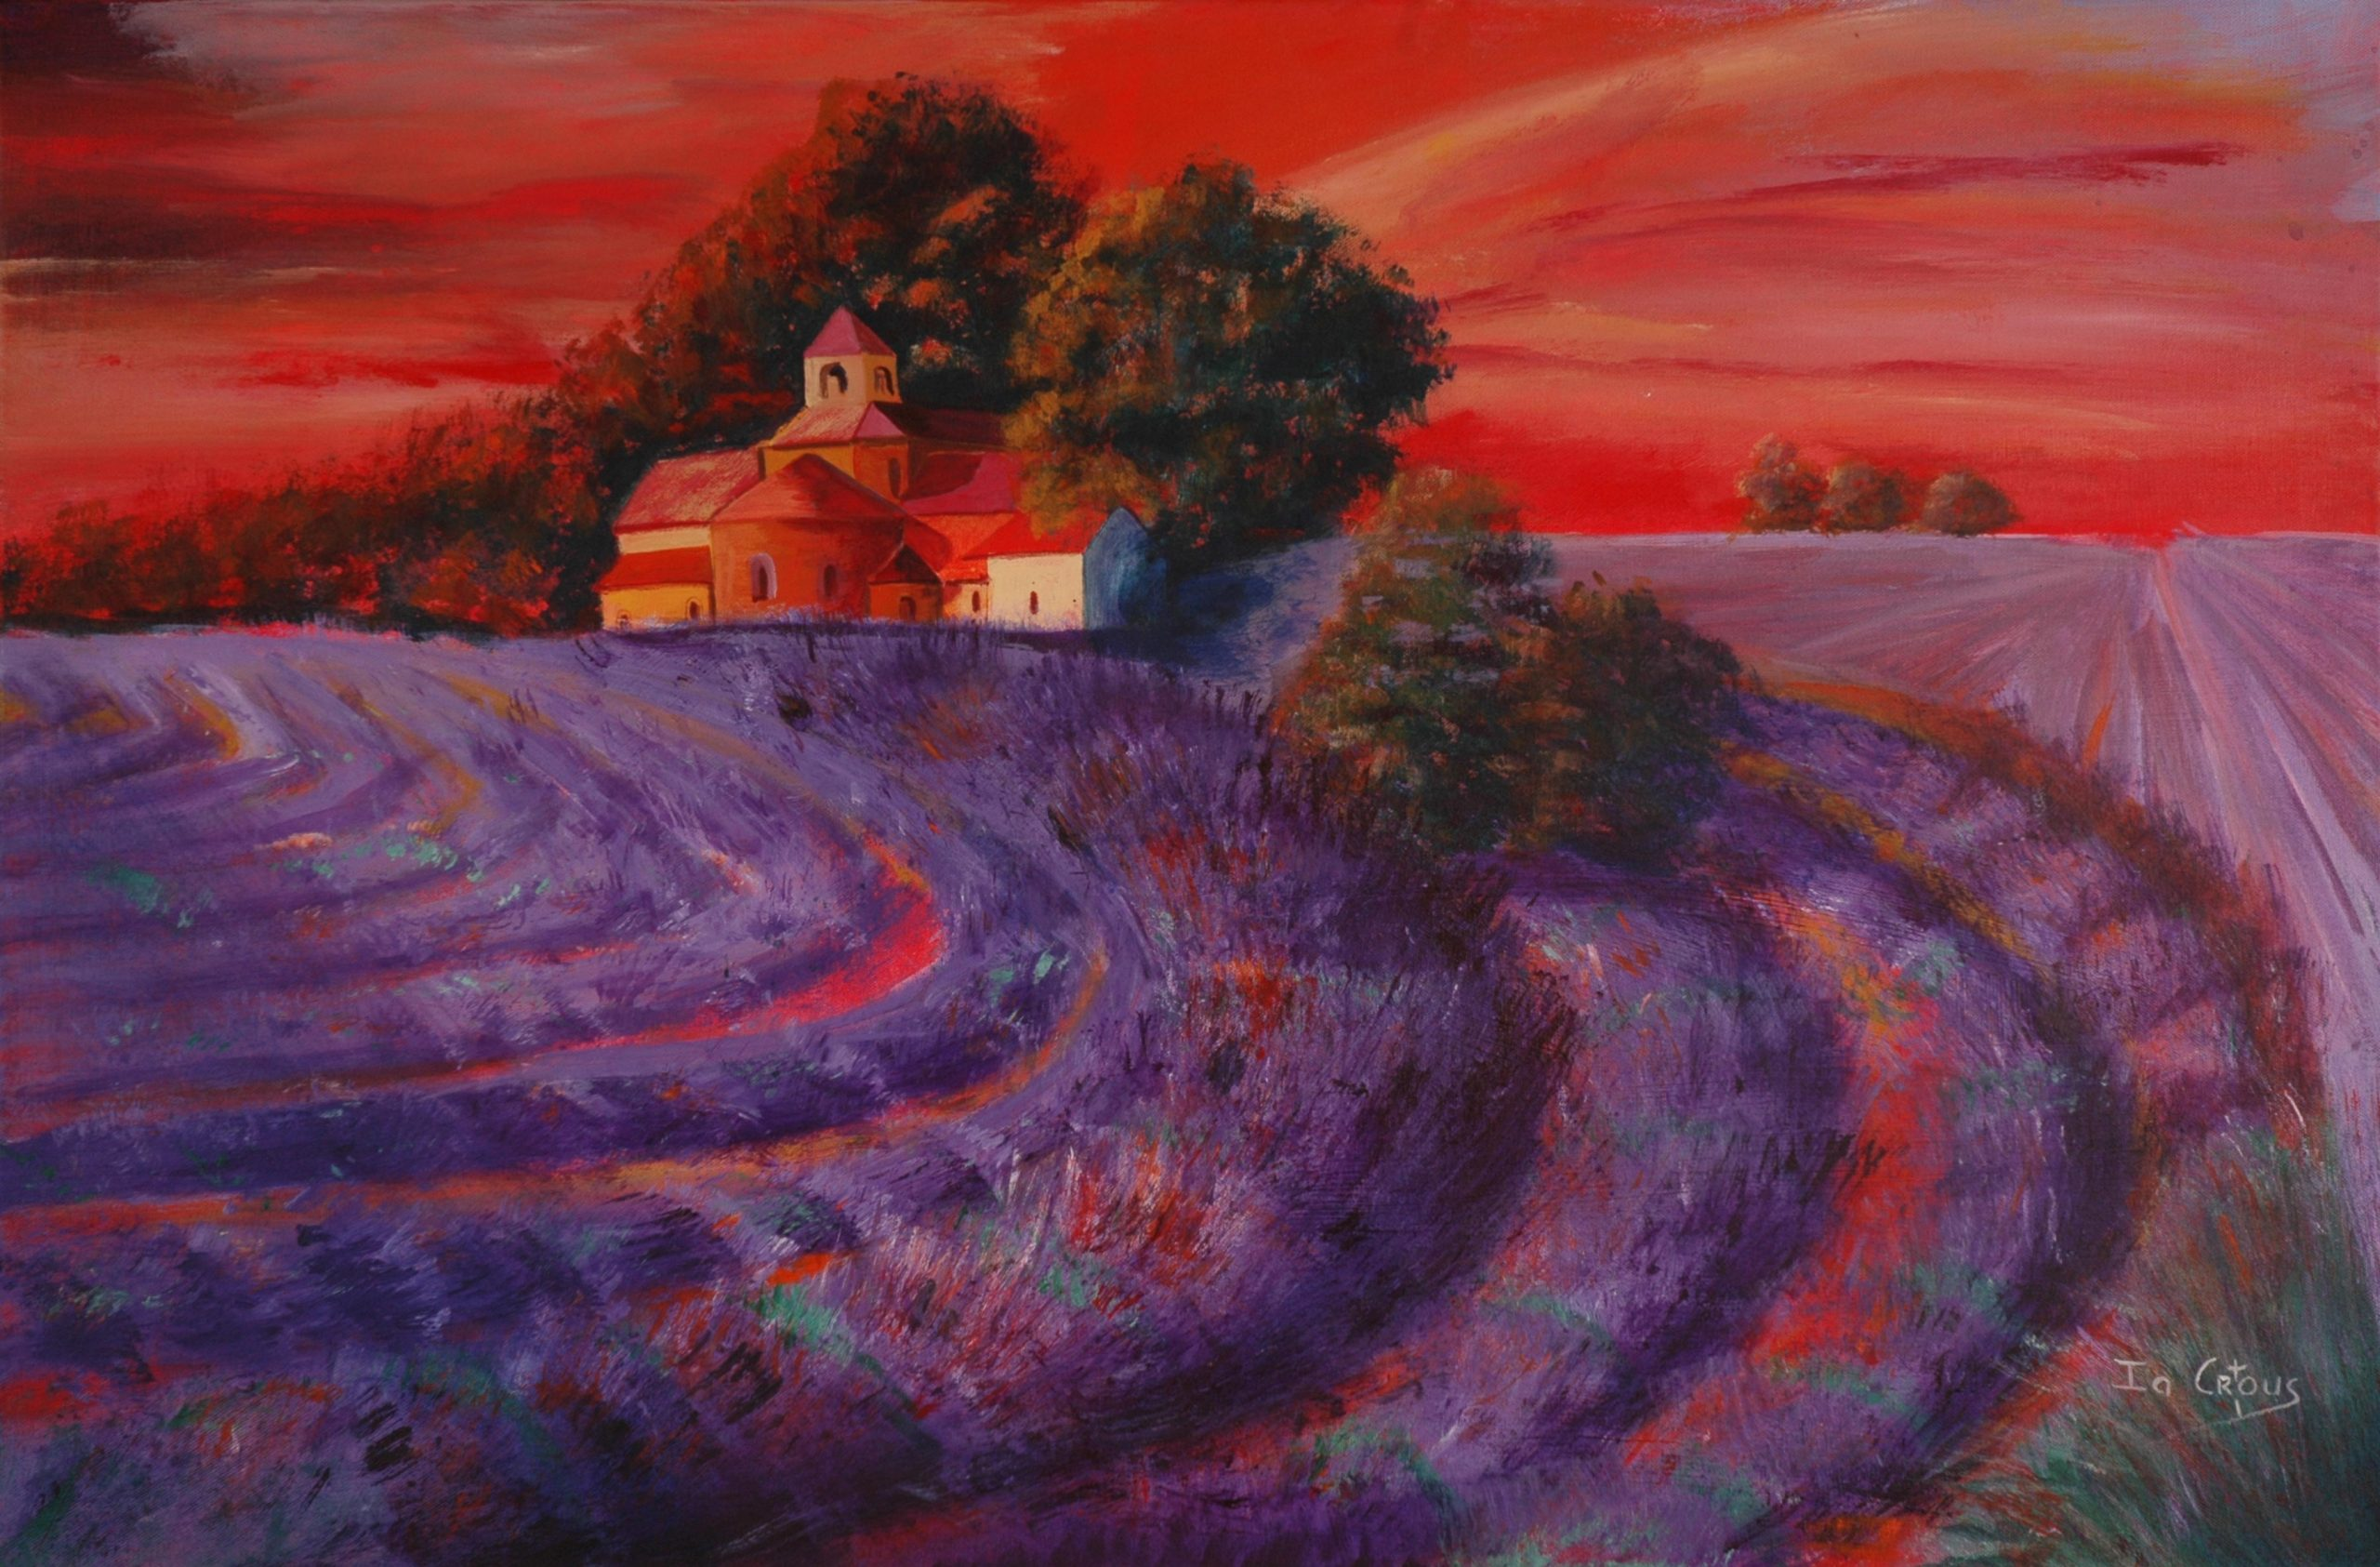 717-SUNSET IN PROVENCE